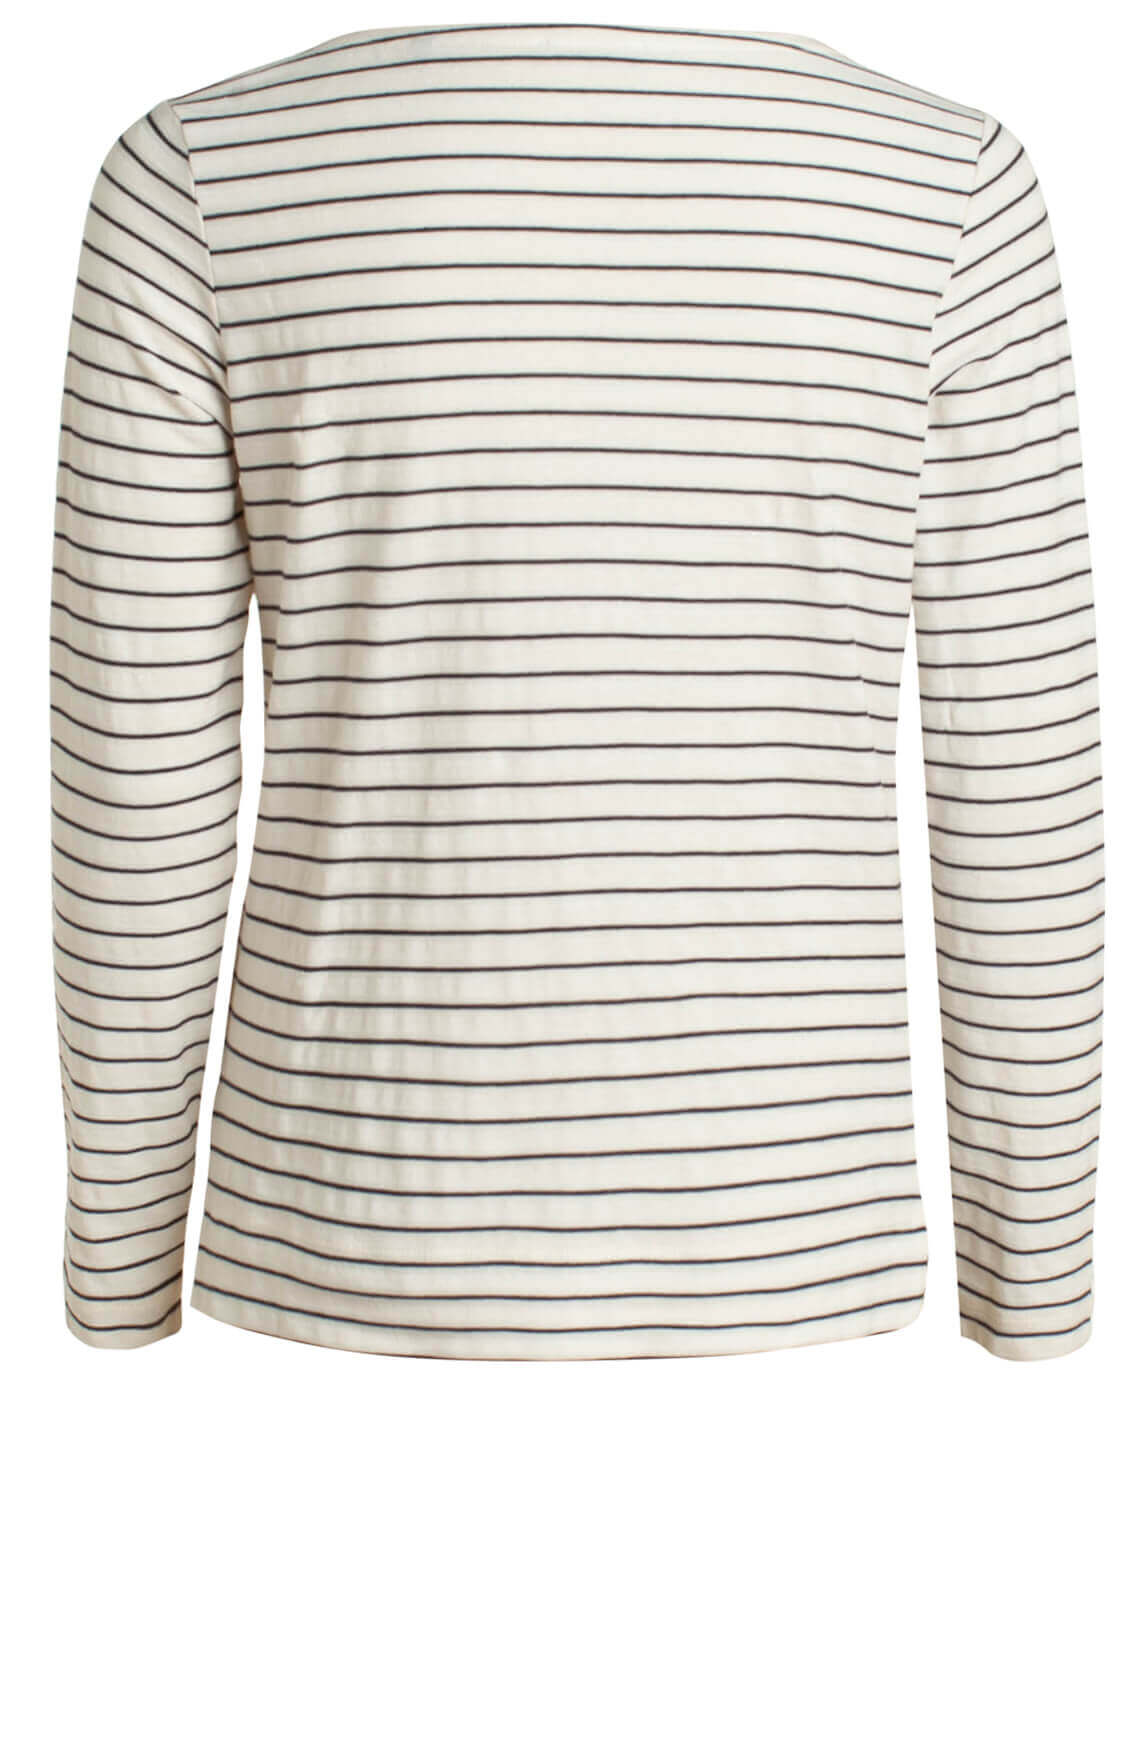 Marc O'Polo Dames Shirt met strepen wit